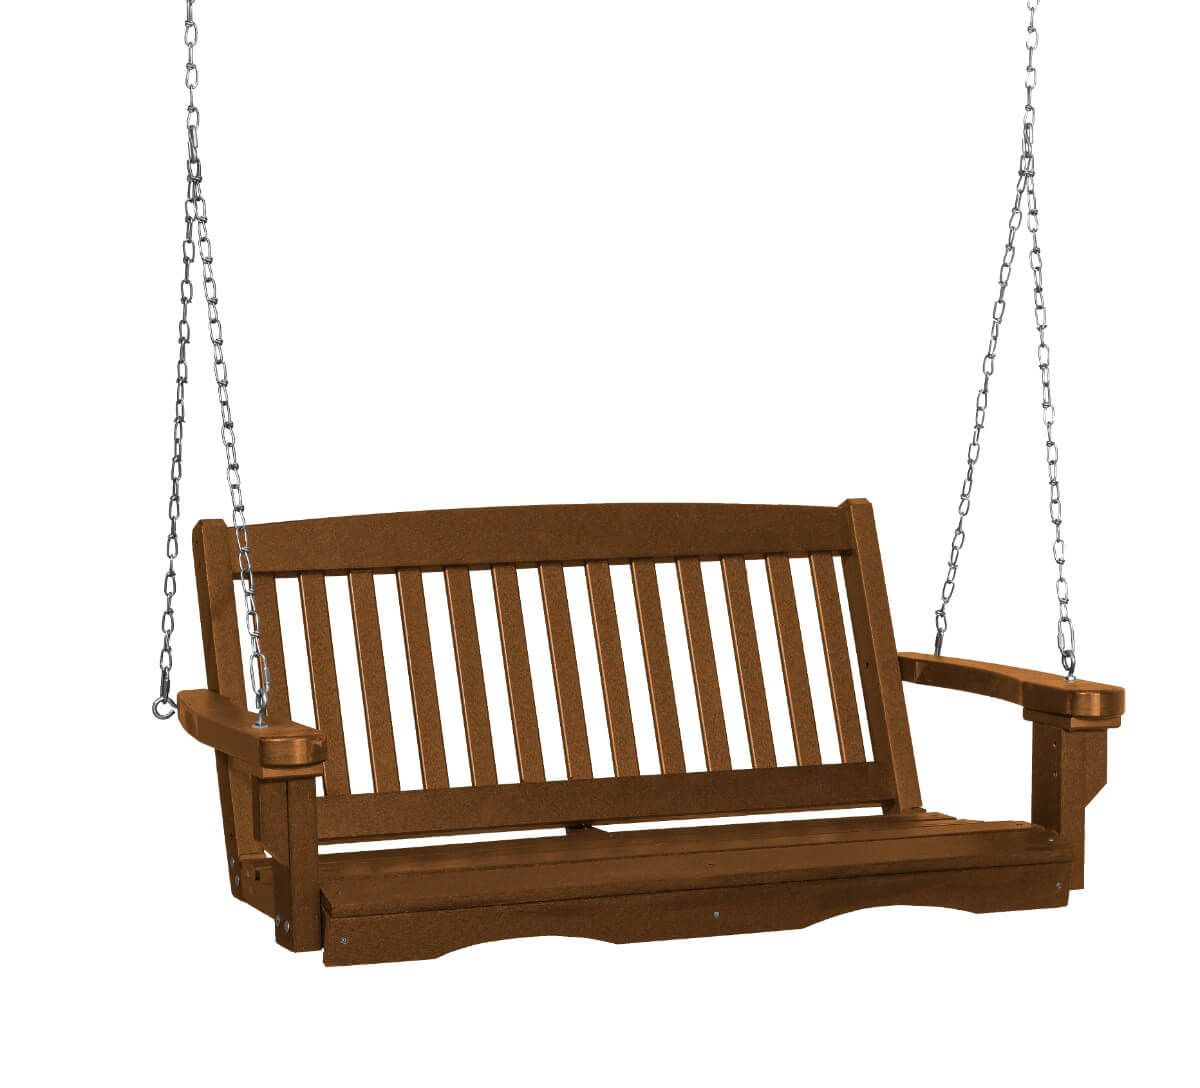 Tudor Brown Aniva Porch Swing